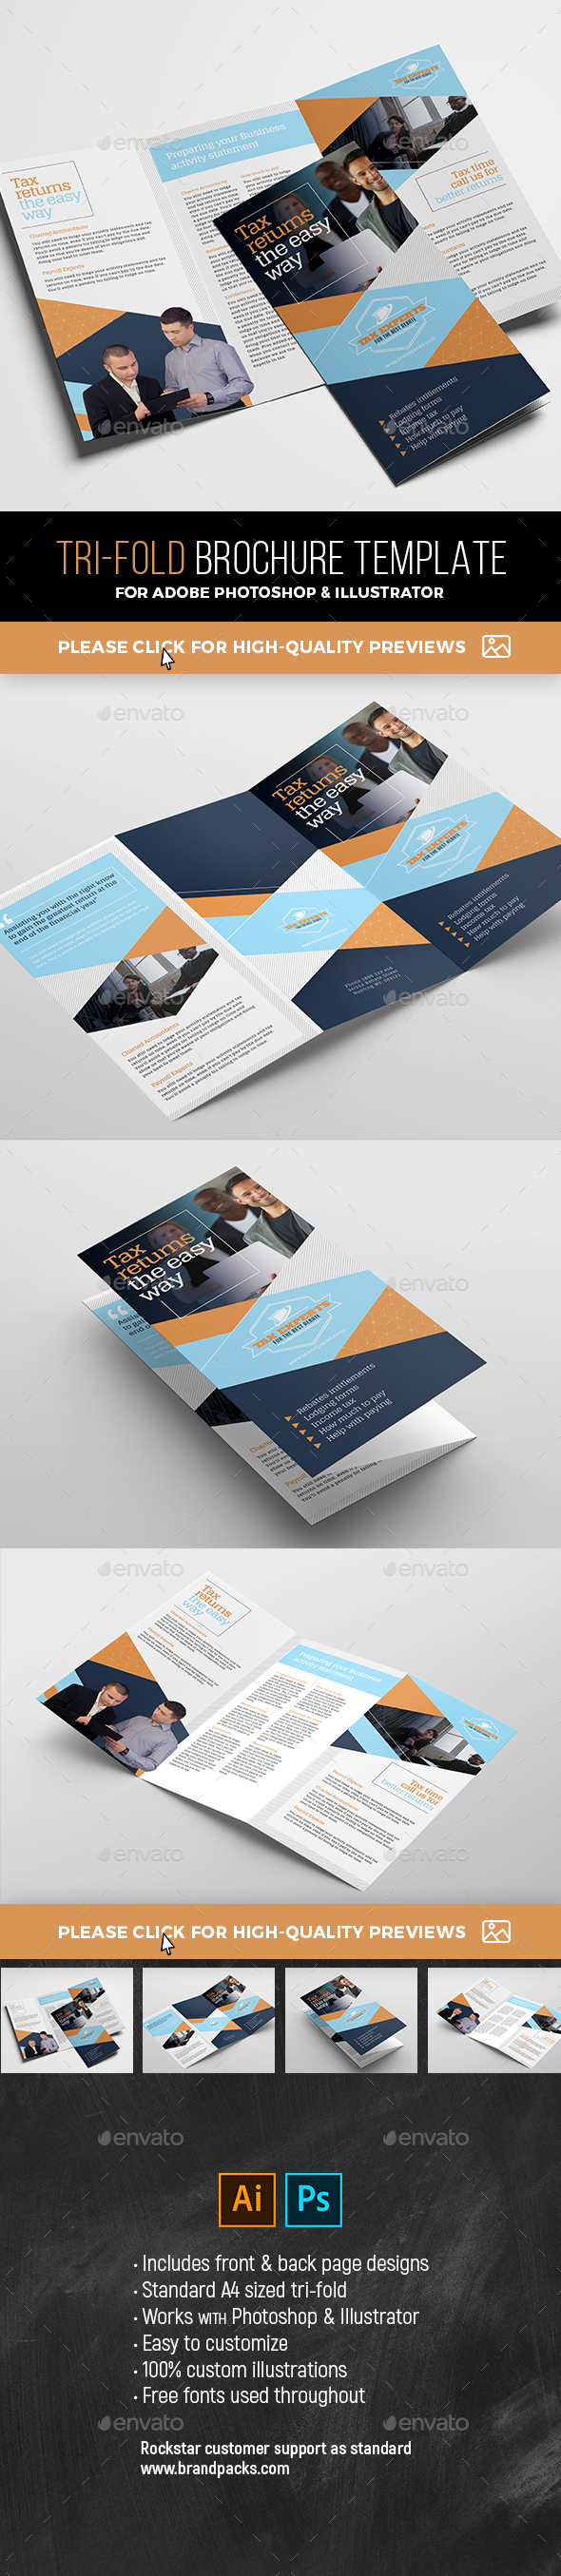 GraphicRiver Tri-Fold Brochure Template 21109843